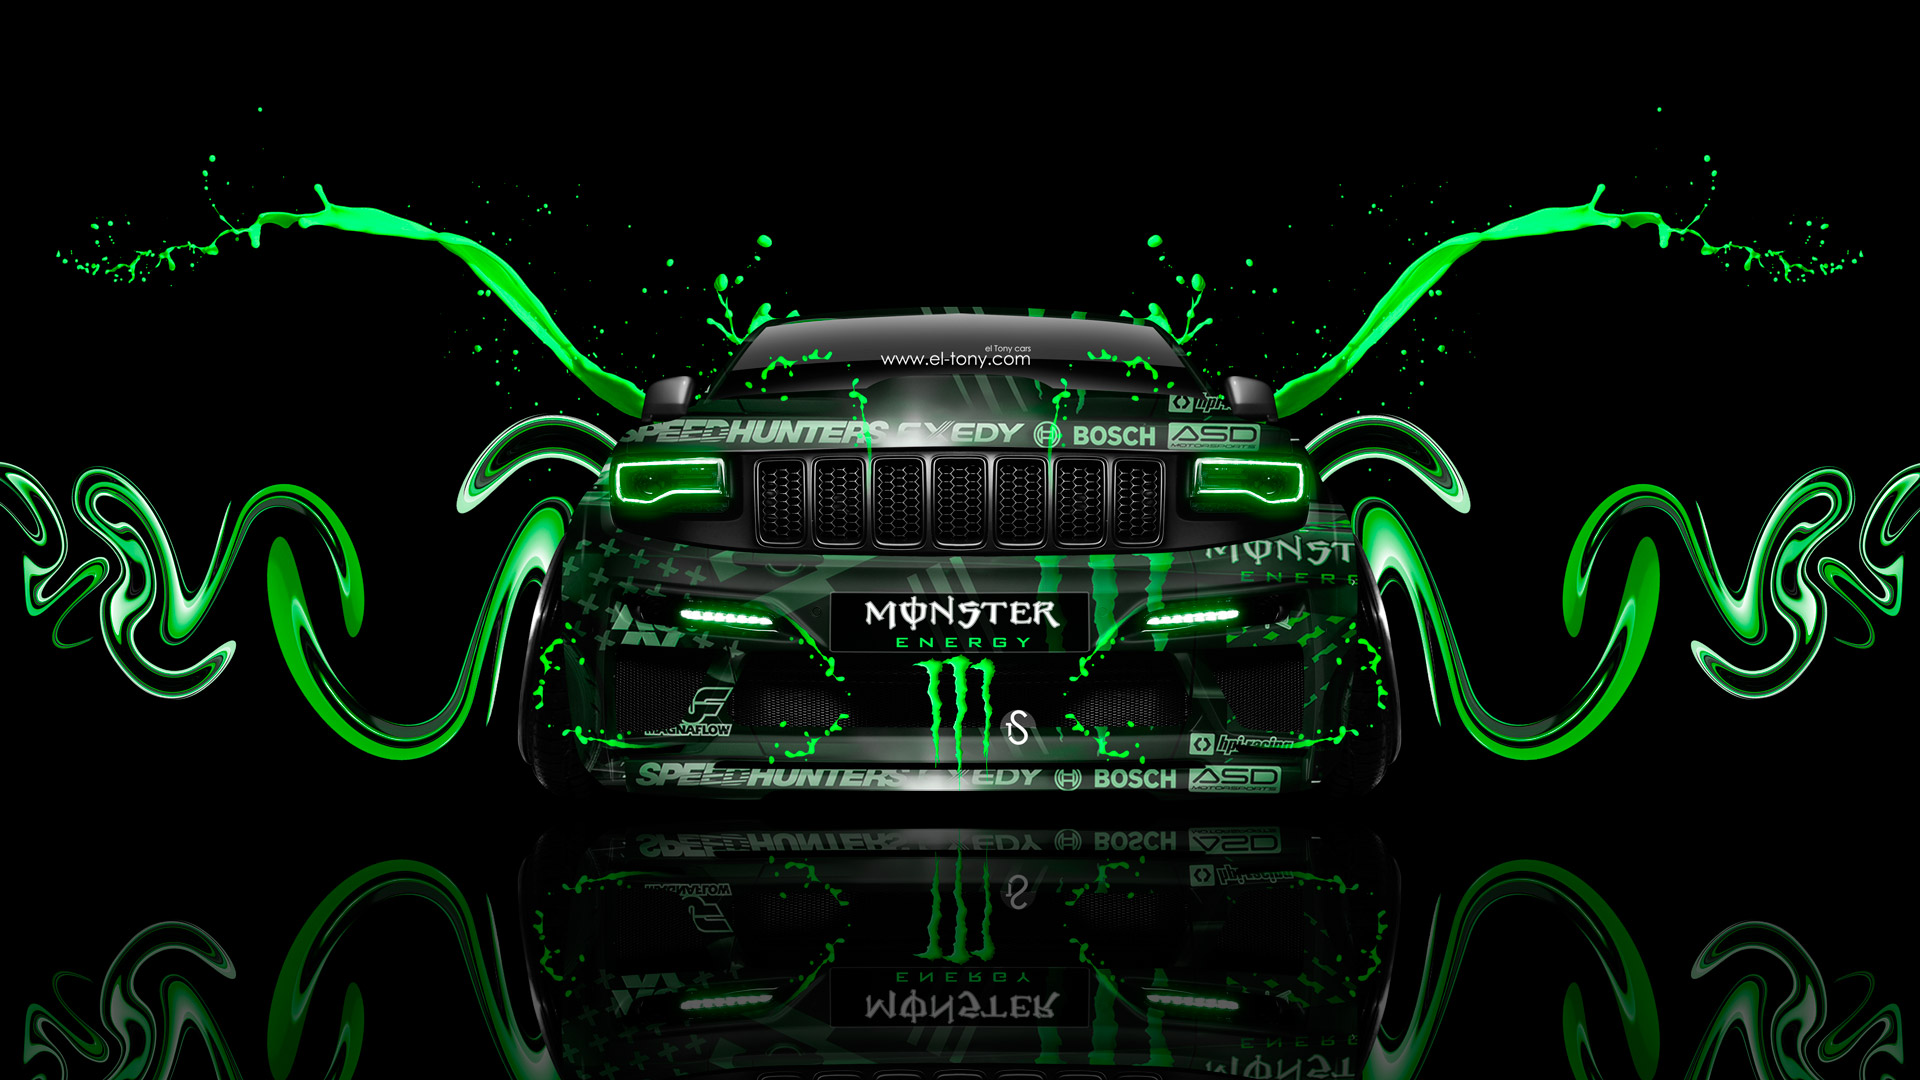 Monster Energy Jeep Grand Cherokee SRT8 Art Front